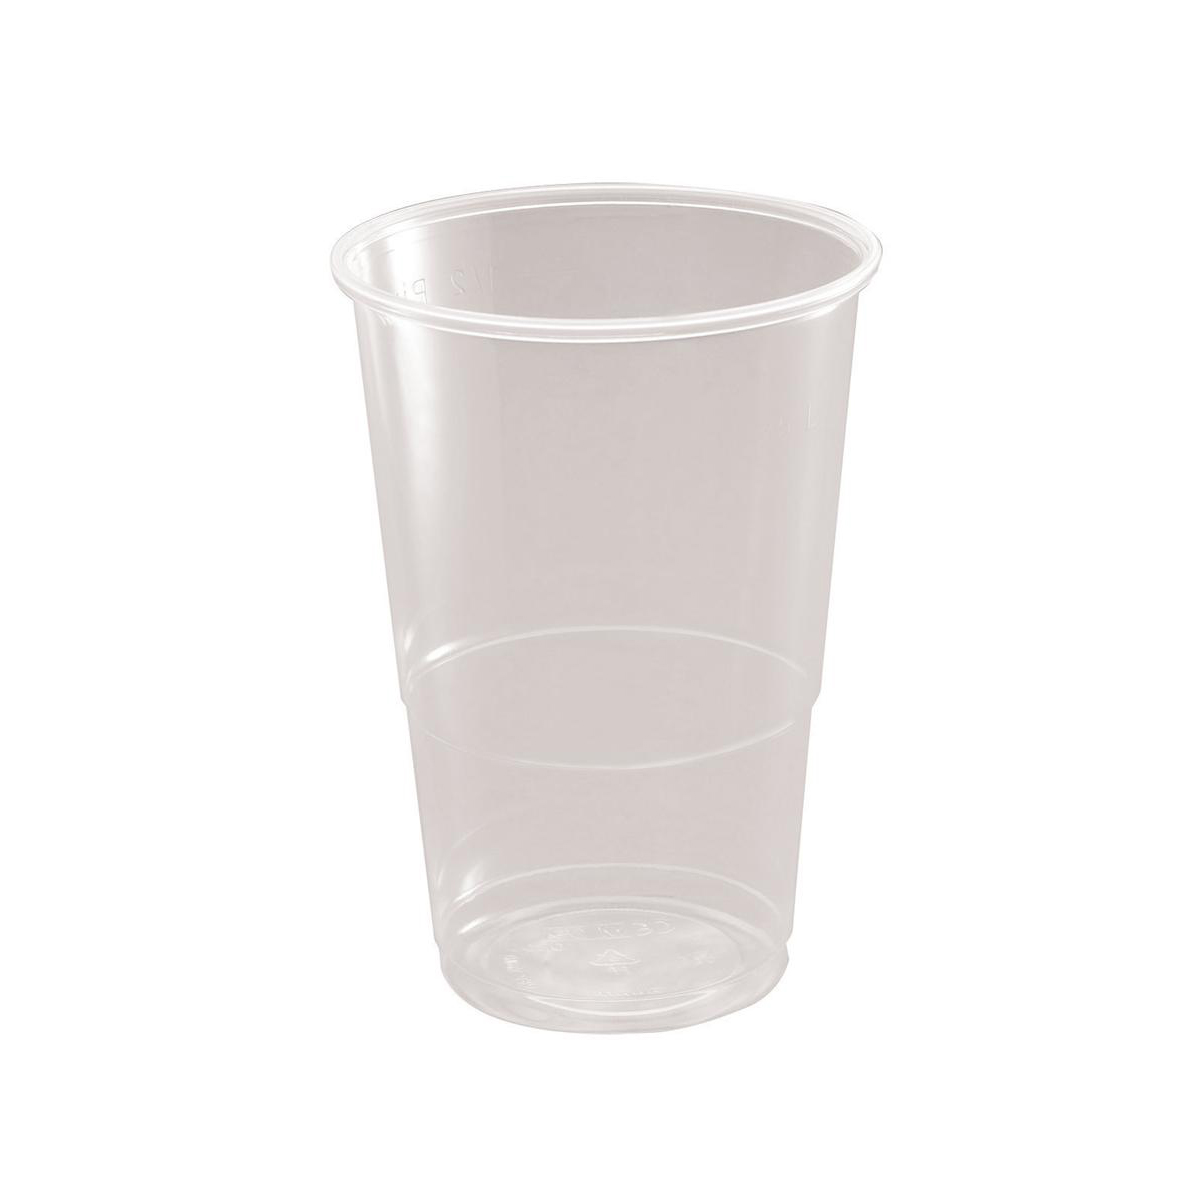 Drinks Stirrers & Straws Half Pint Tumbler CE Marked Polypropylene 9.6oz 284ml Clear Ref 30010 Pack 50